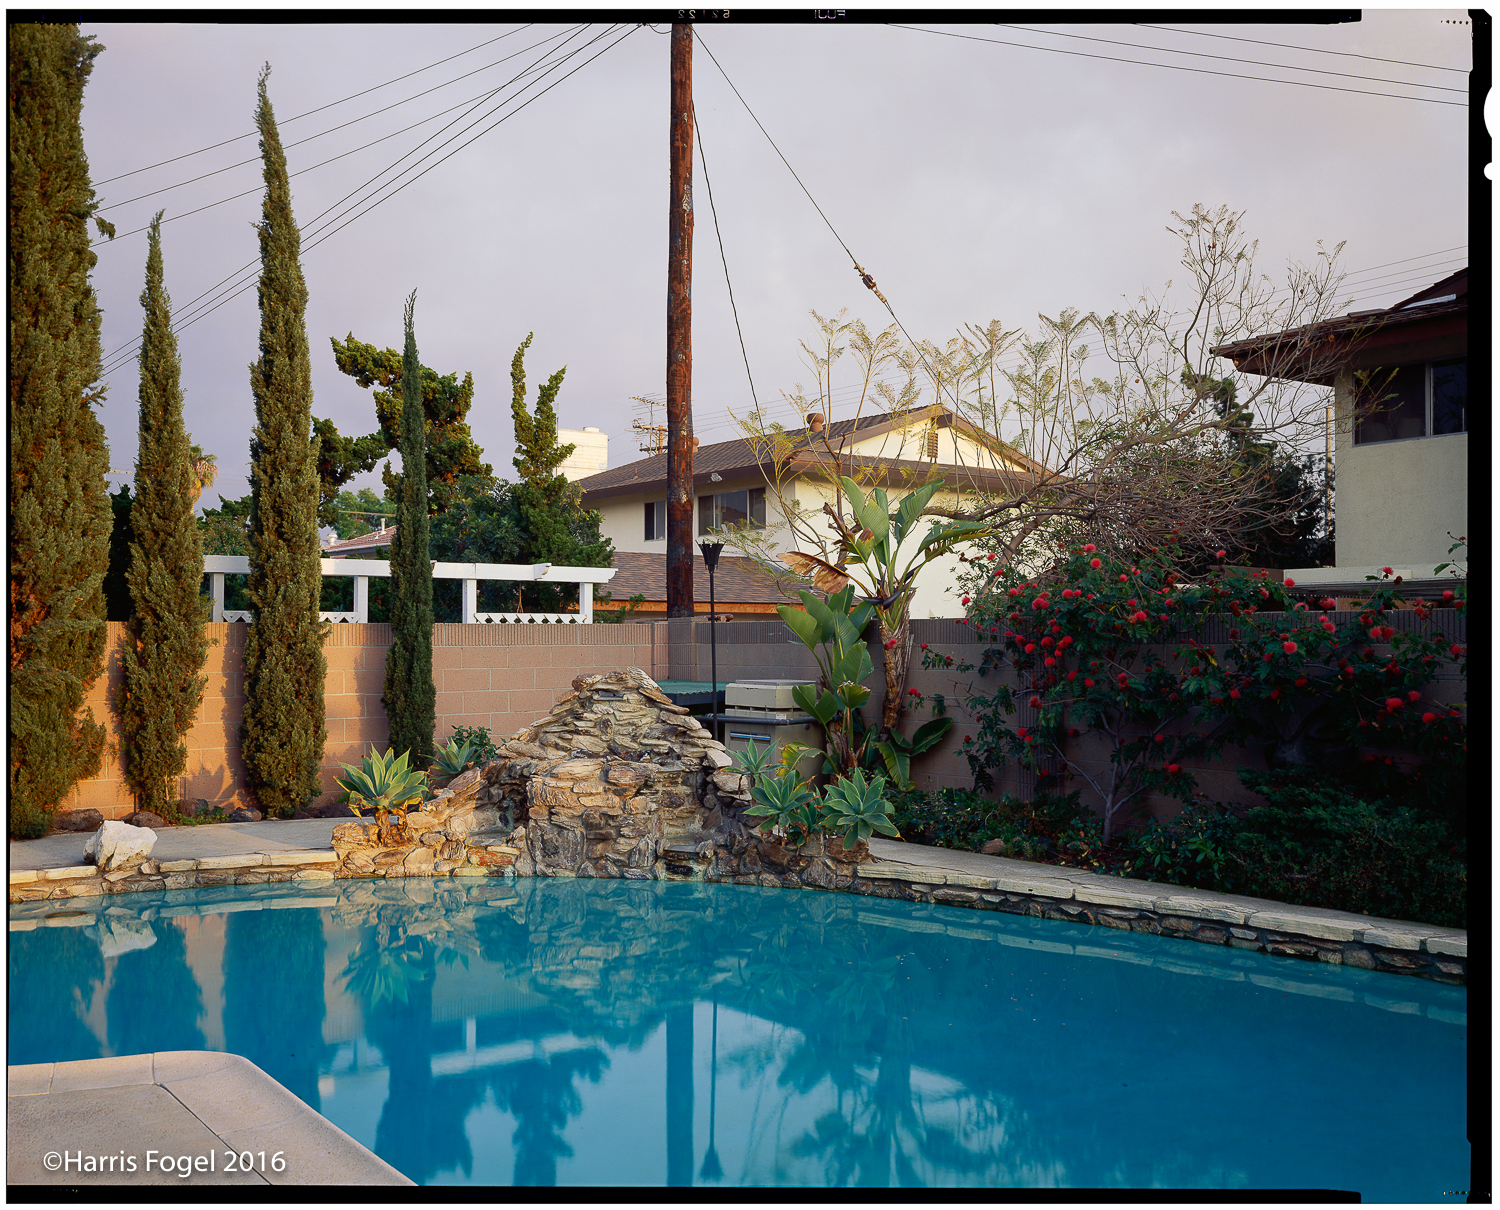 Hfogel_QA16_Anaheim_Backyard.jpg